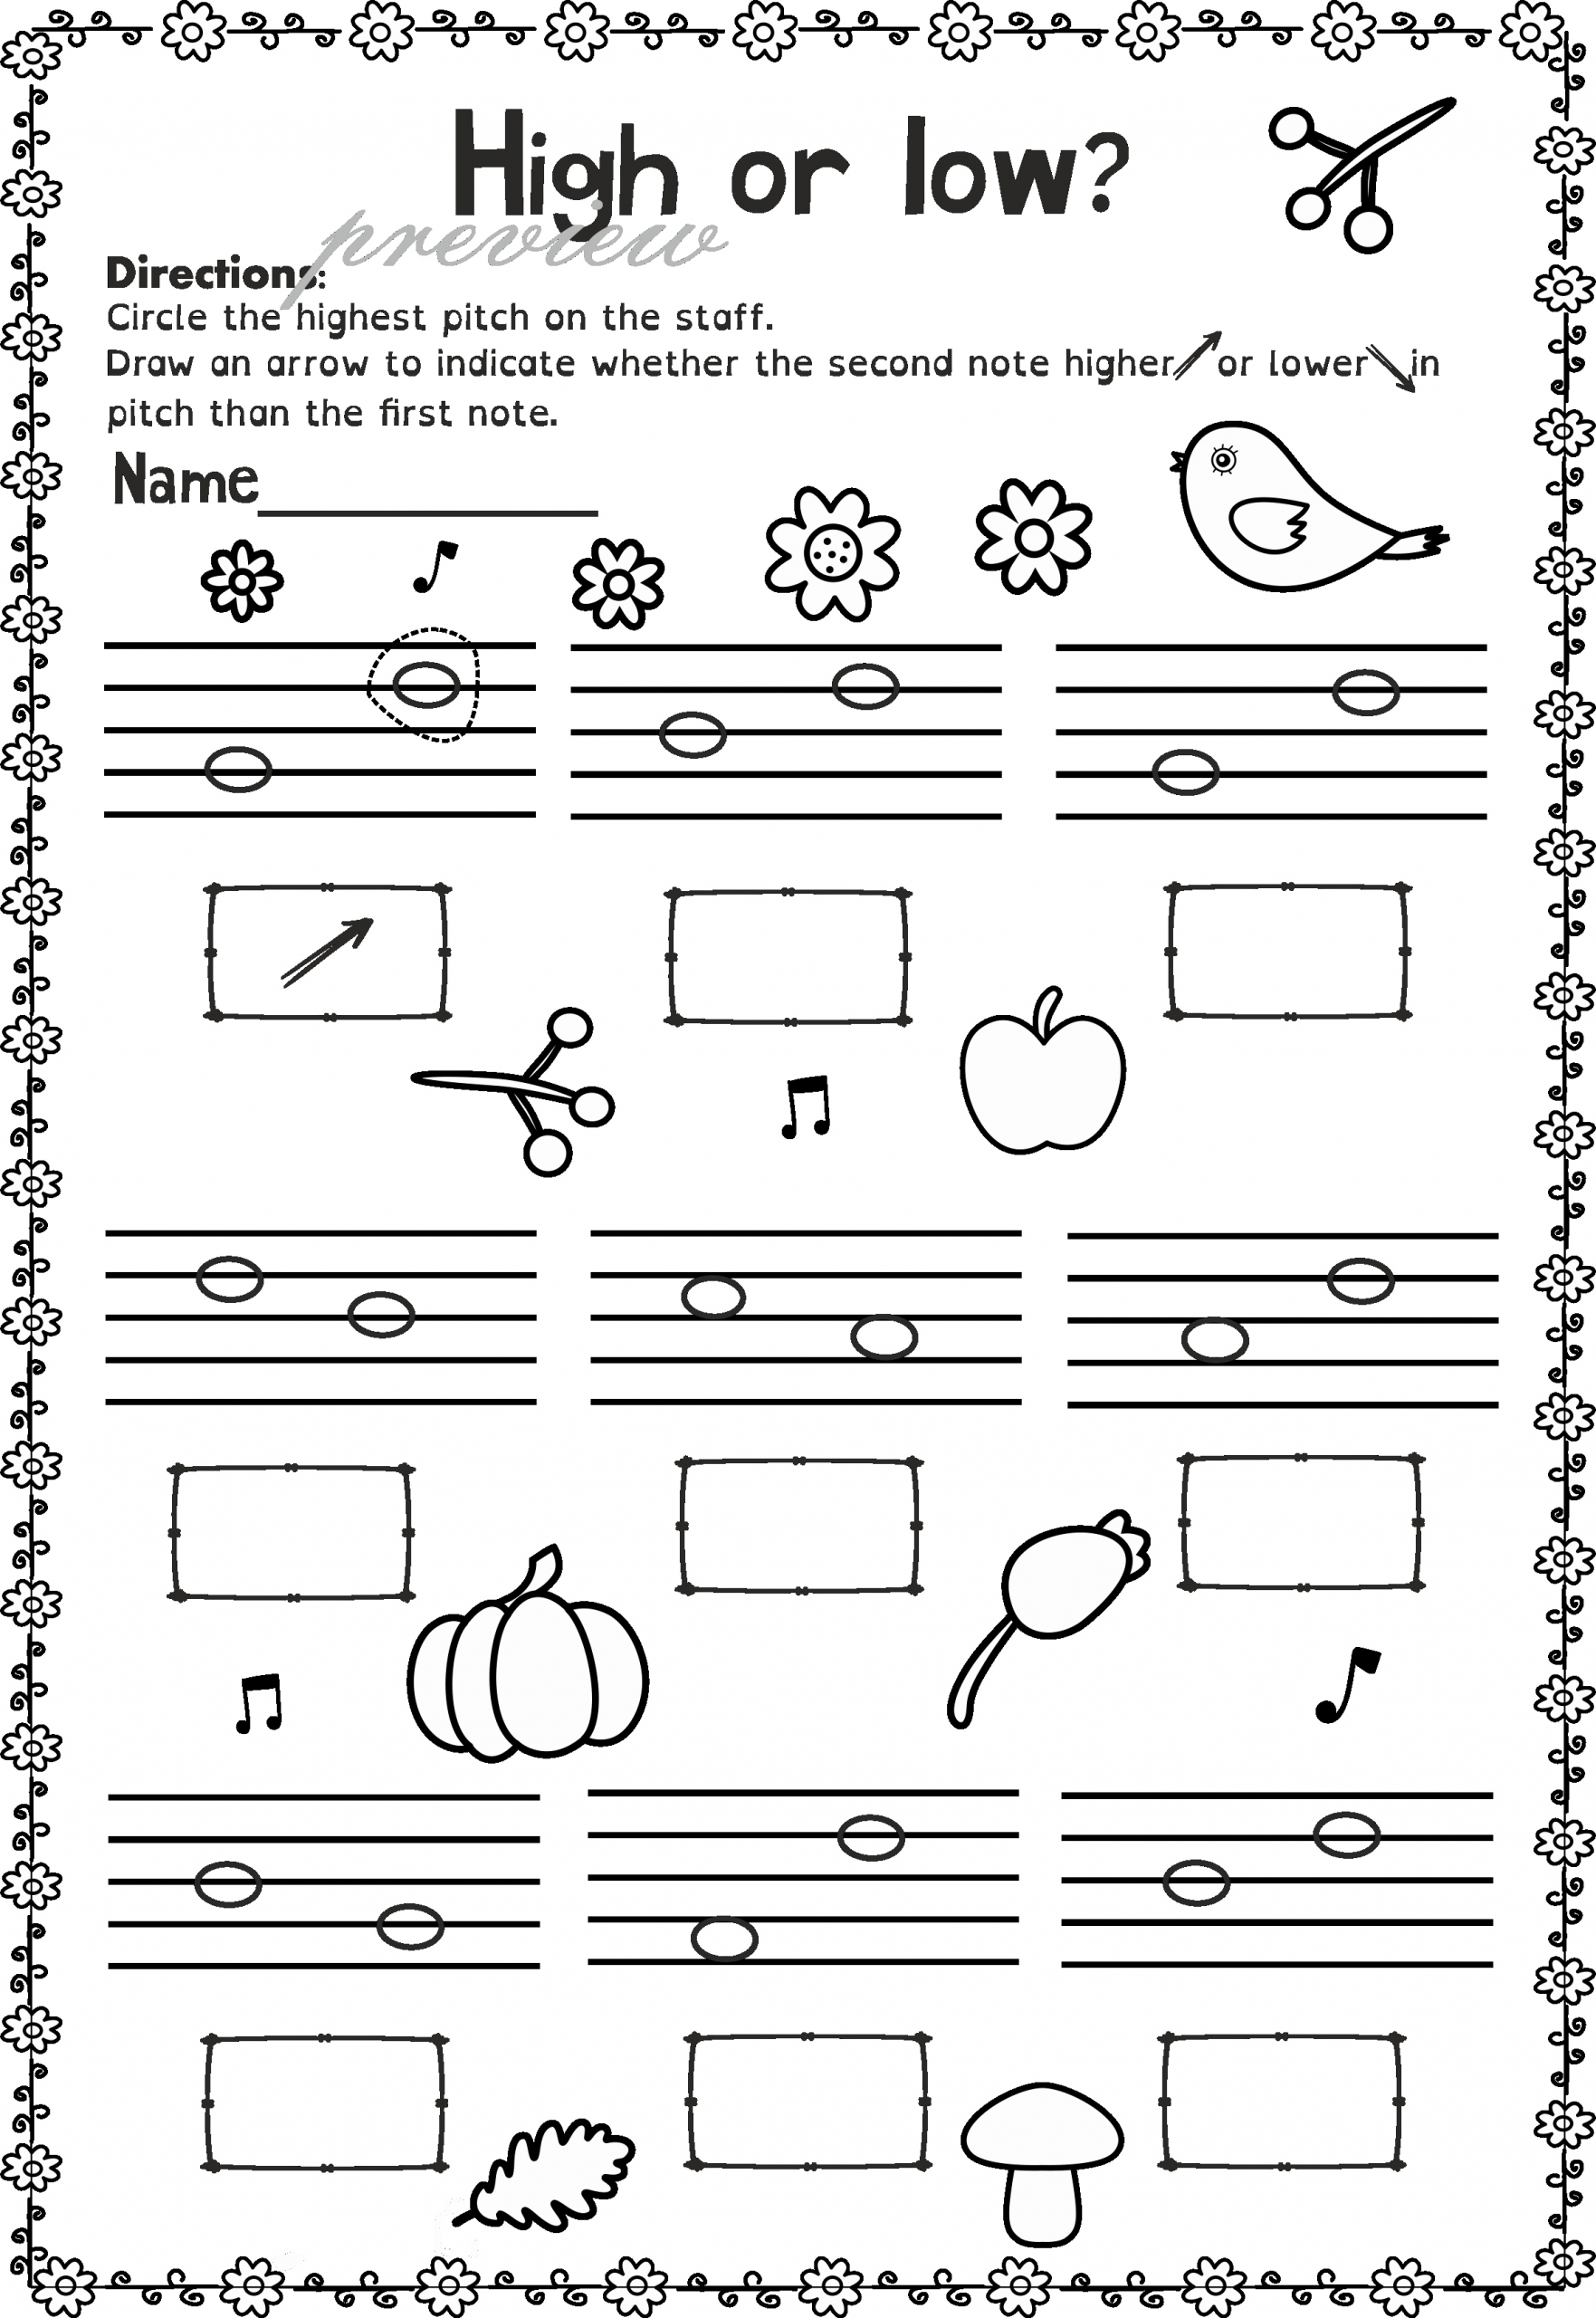 Music theory Worksheet for Kids Lovely This Saving Bundle Contains 40 Fall Autumn themed